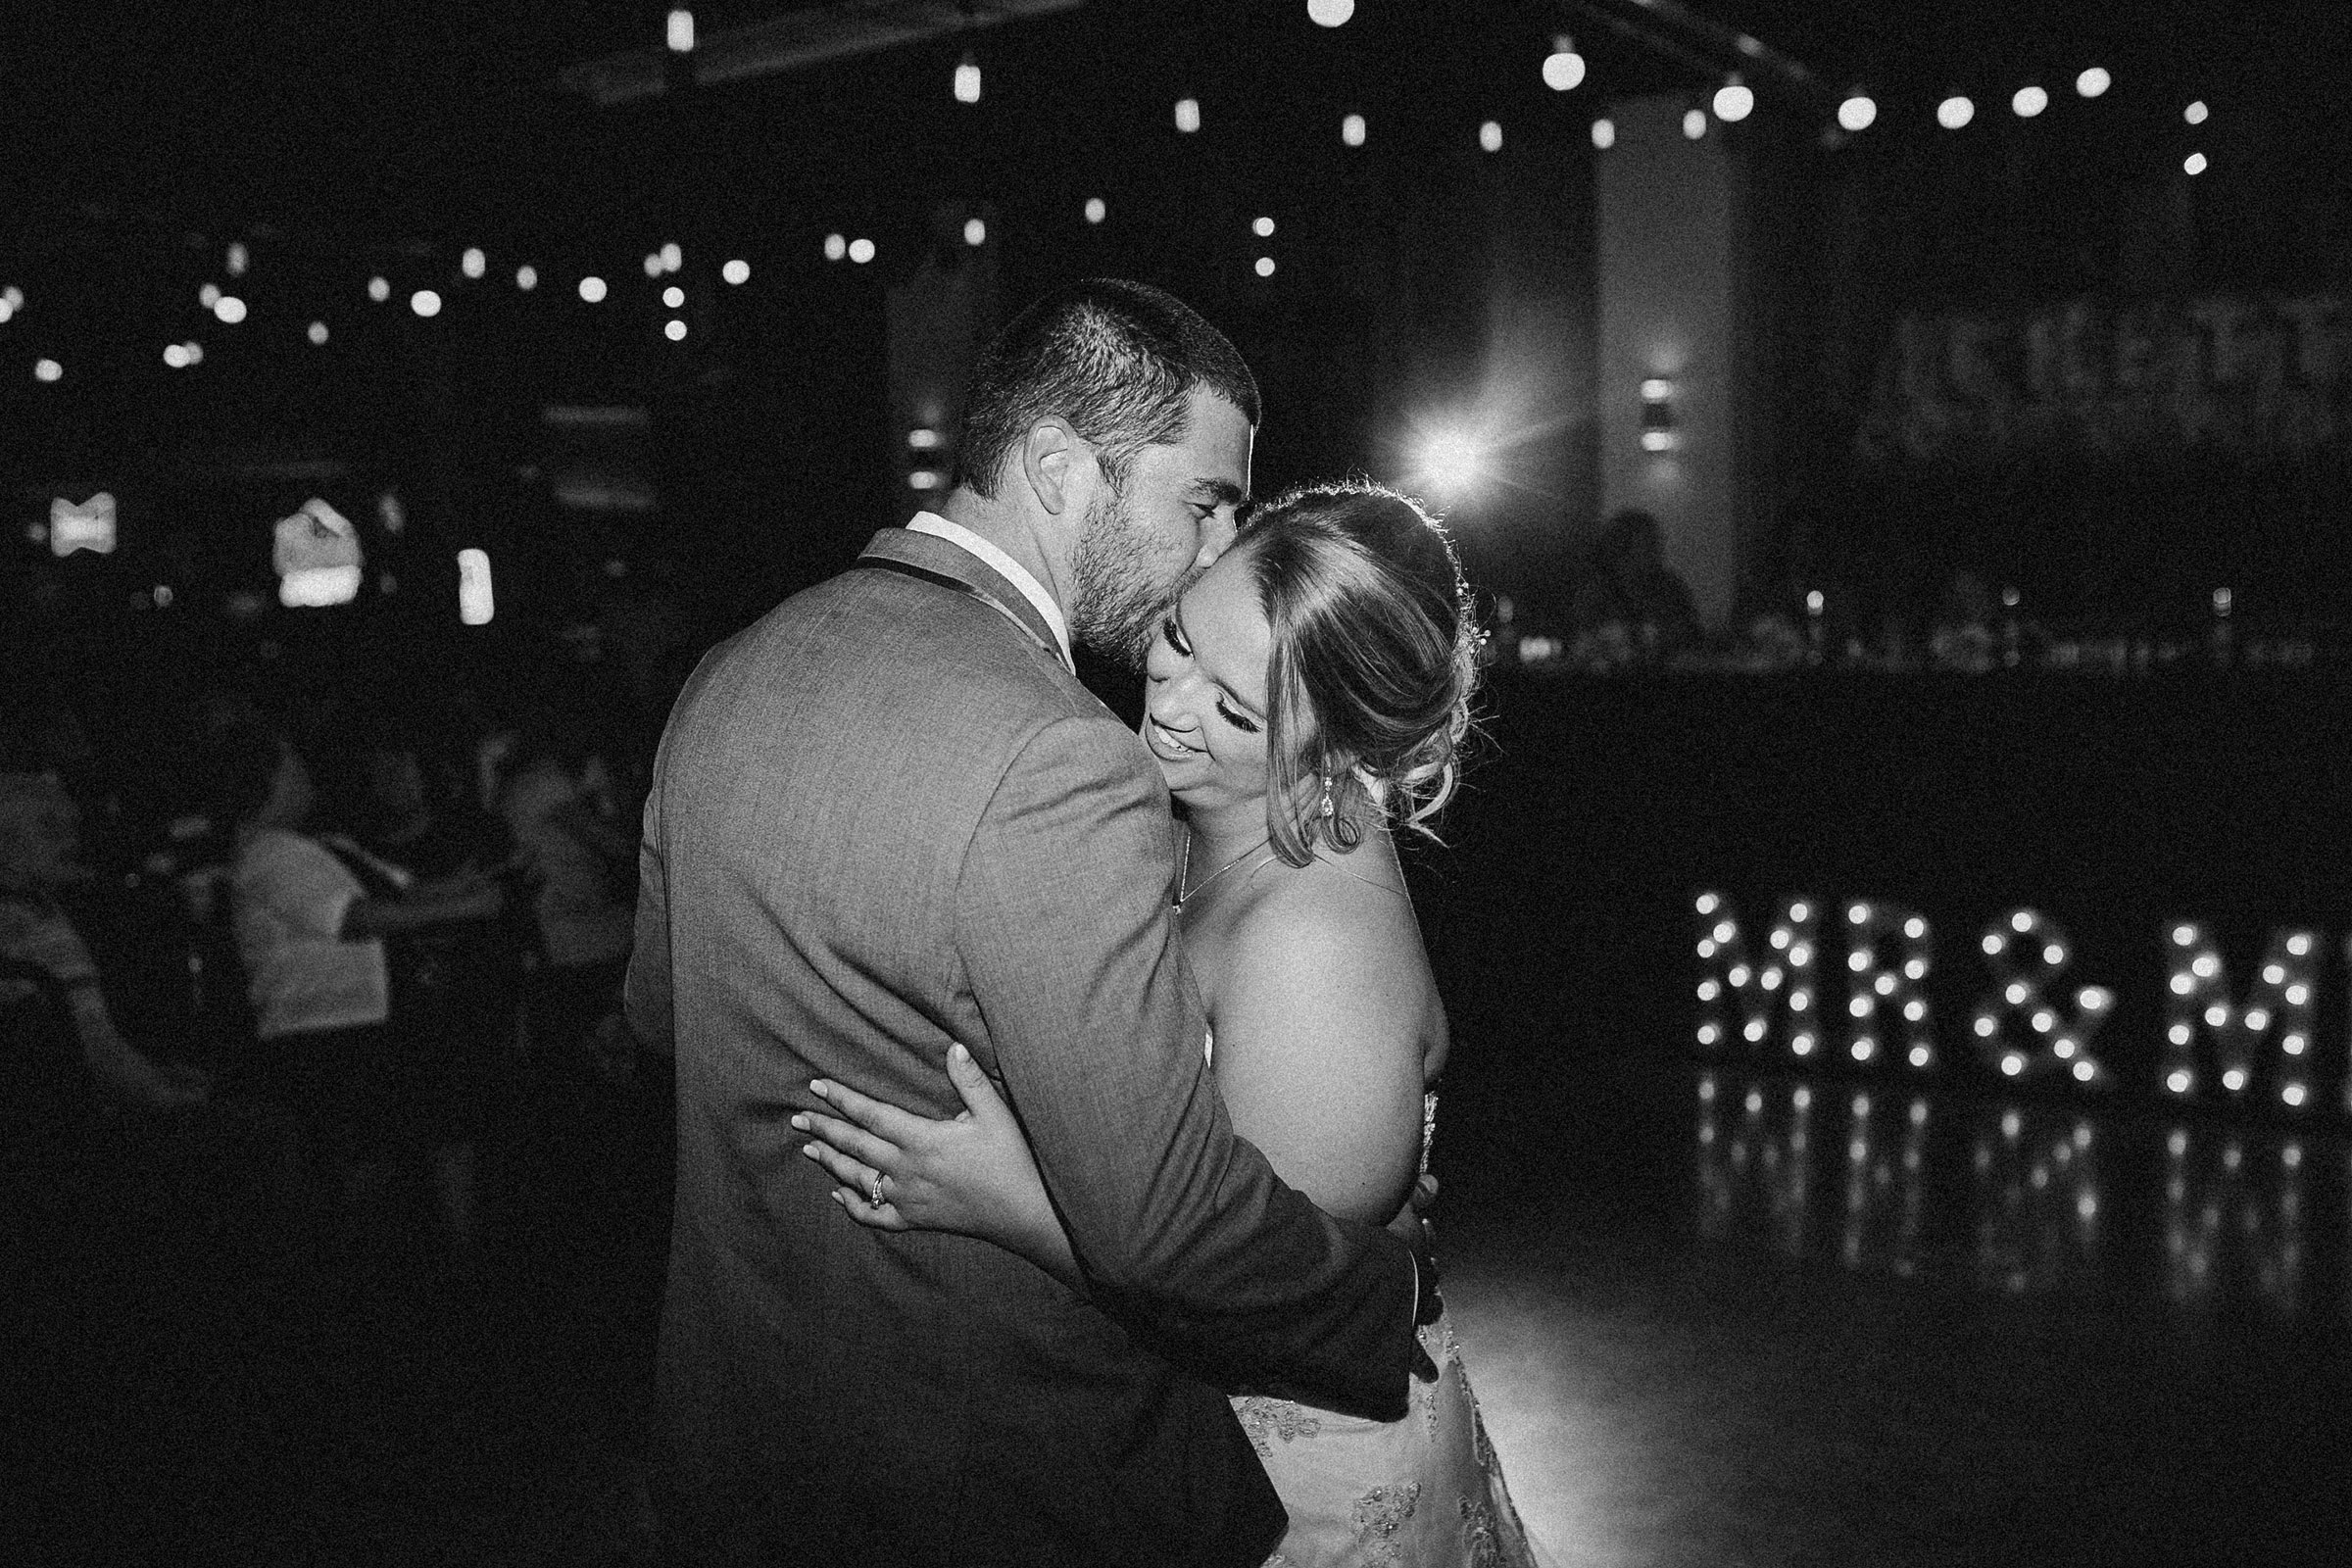 bride-dancing-with-groom-black-andw-white-decades-event-center-building-desmoines-iowa-raelyn-ramey-photography..jpg